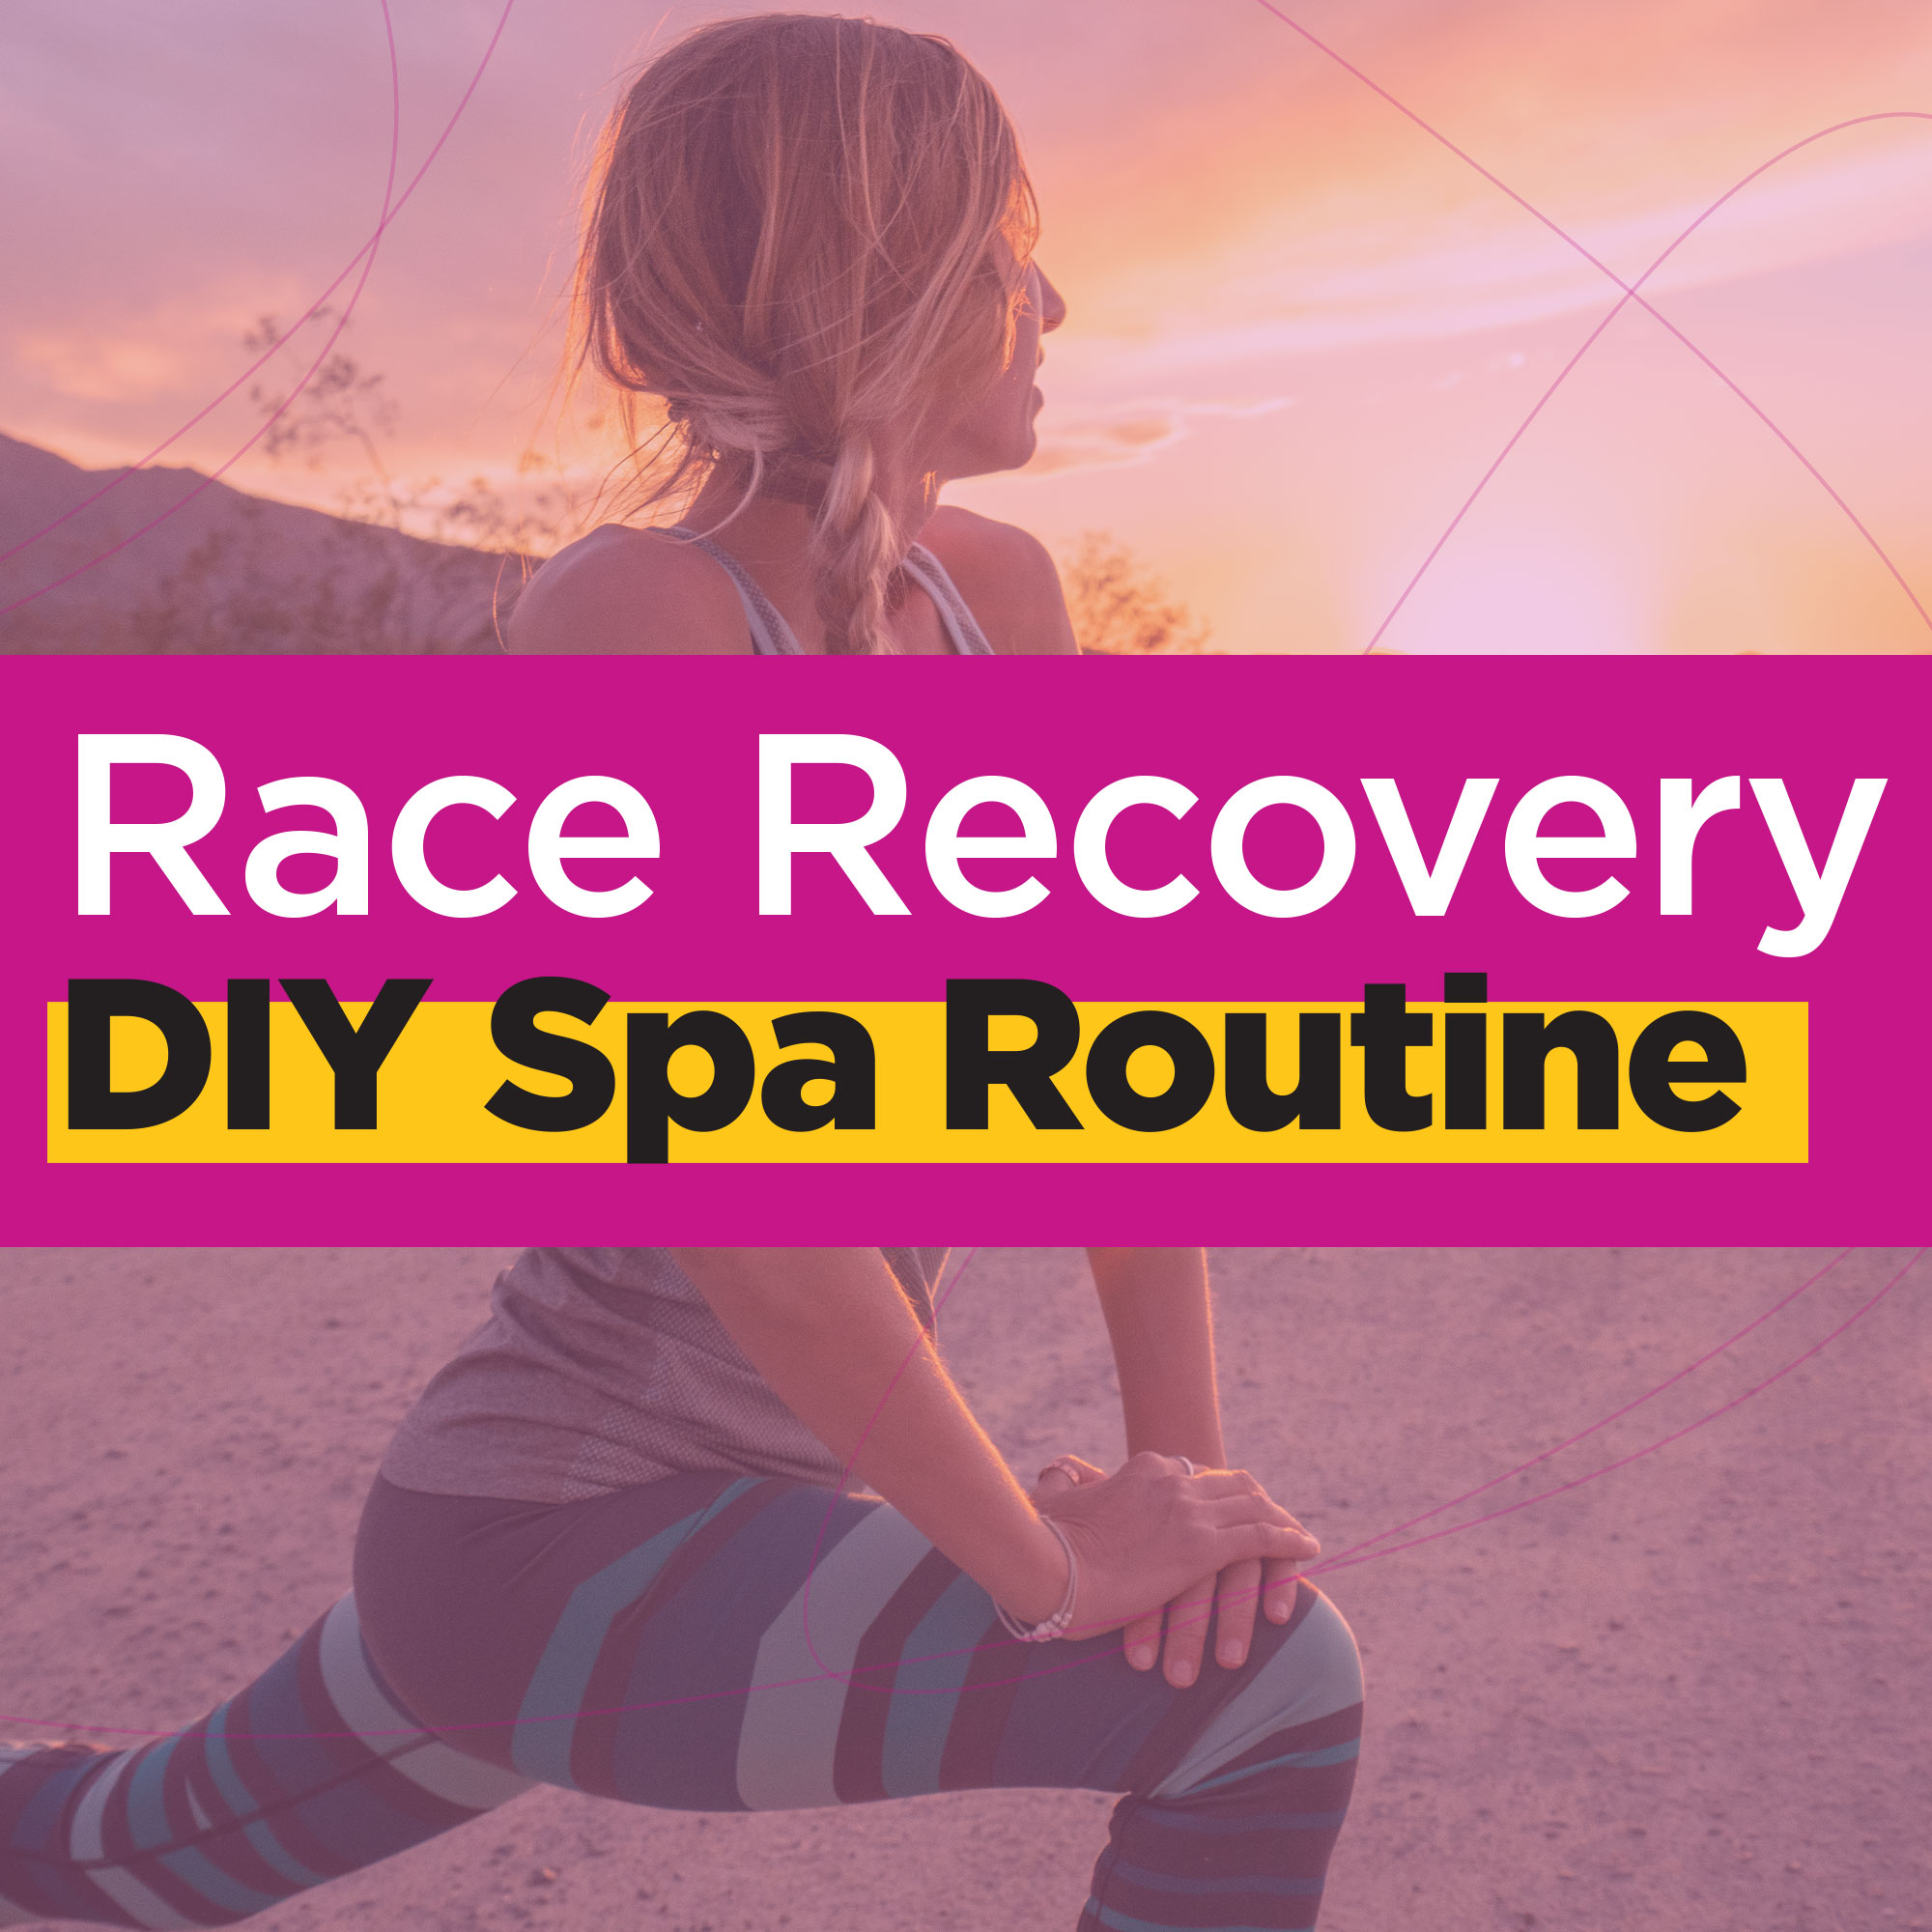 race recovery guide thumb